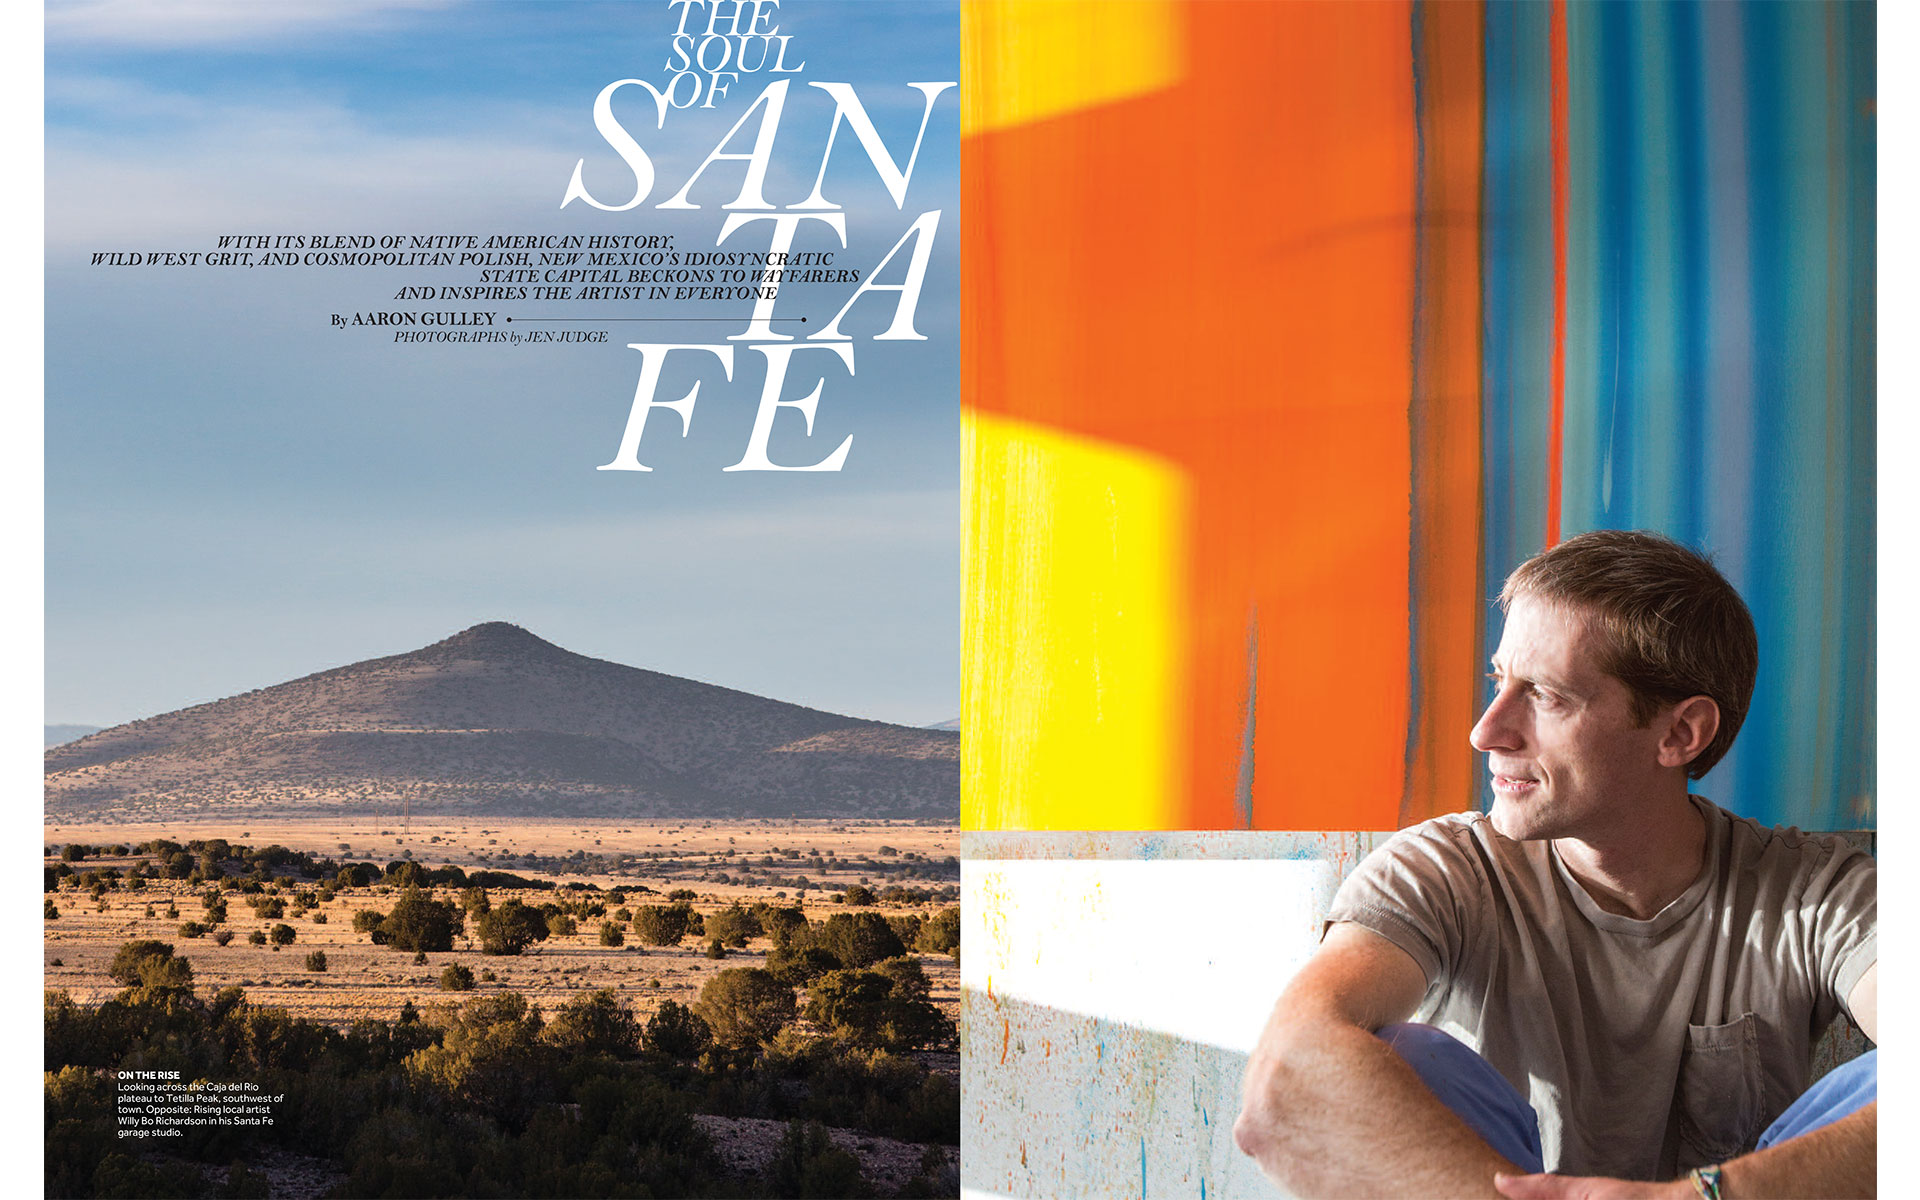 "<p style=""text-align: center;""><b><font color=""2a2871"">The Soul Of Santa Fe, DestinAsian, February 2013</font></b>